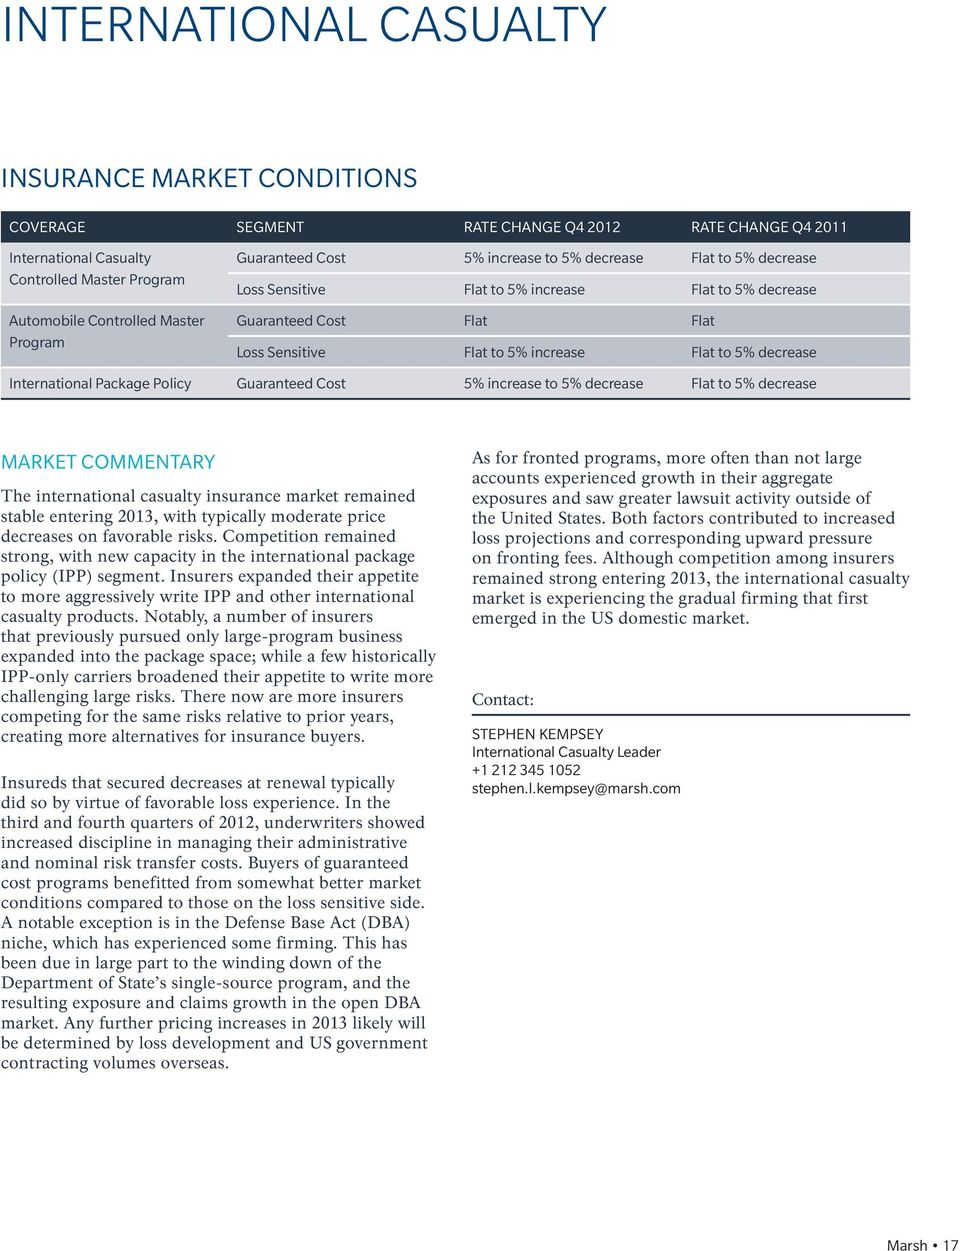 International Package Policy Guaranteed Cost 5% increase to 5% decrease Flat to 5% decrease MARKET COMMENTARY The international casualty insurance market remained stable entering 2013, with typically